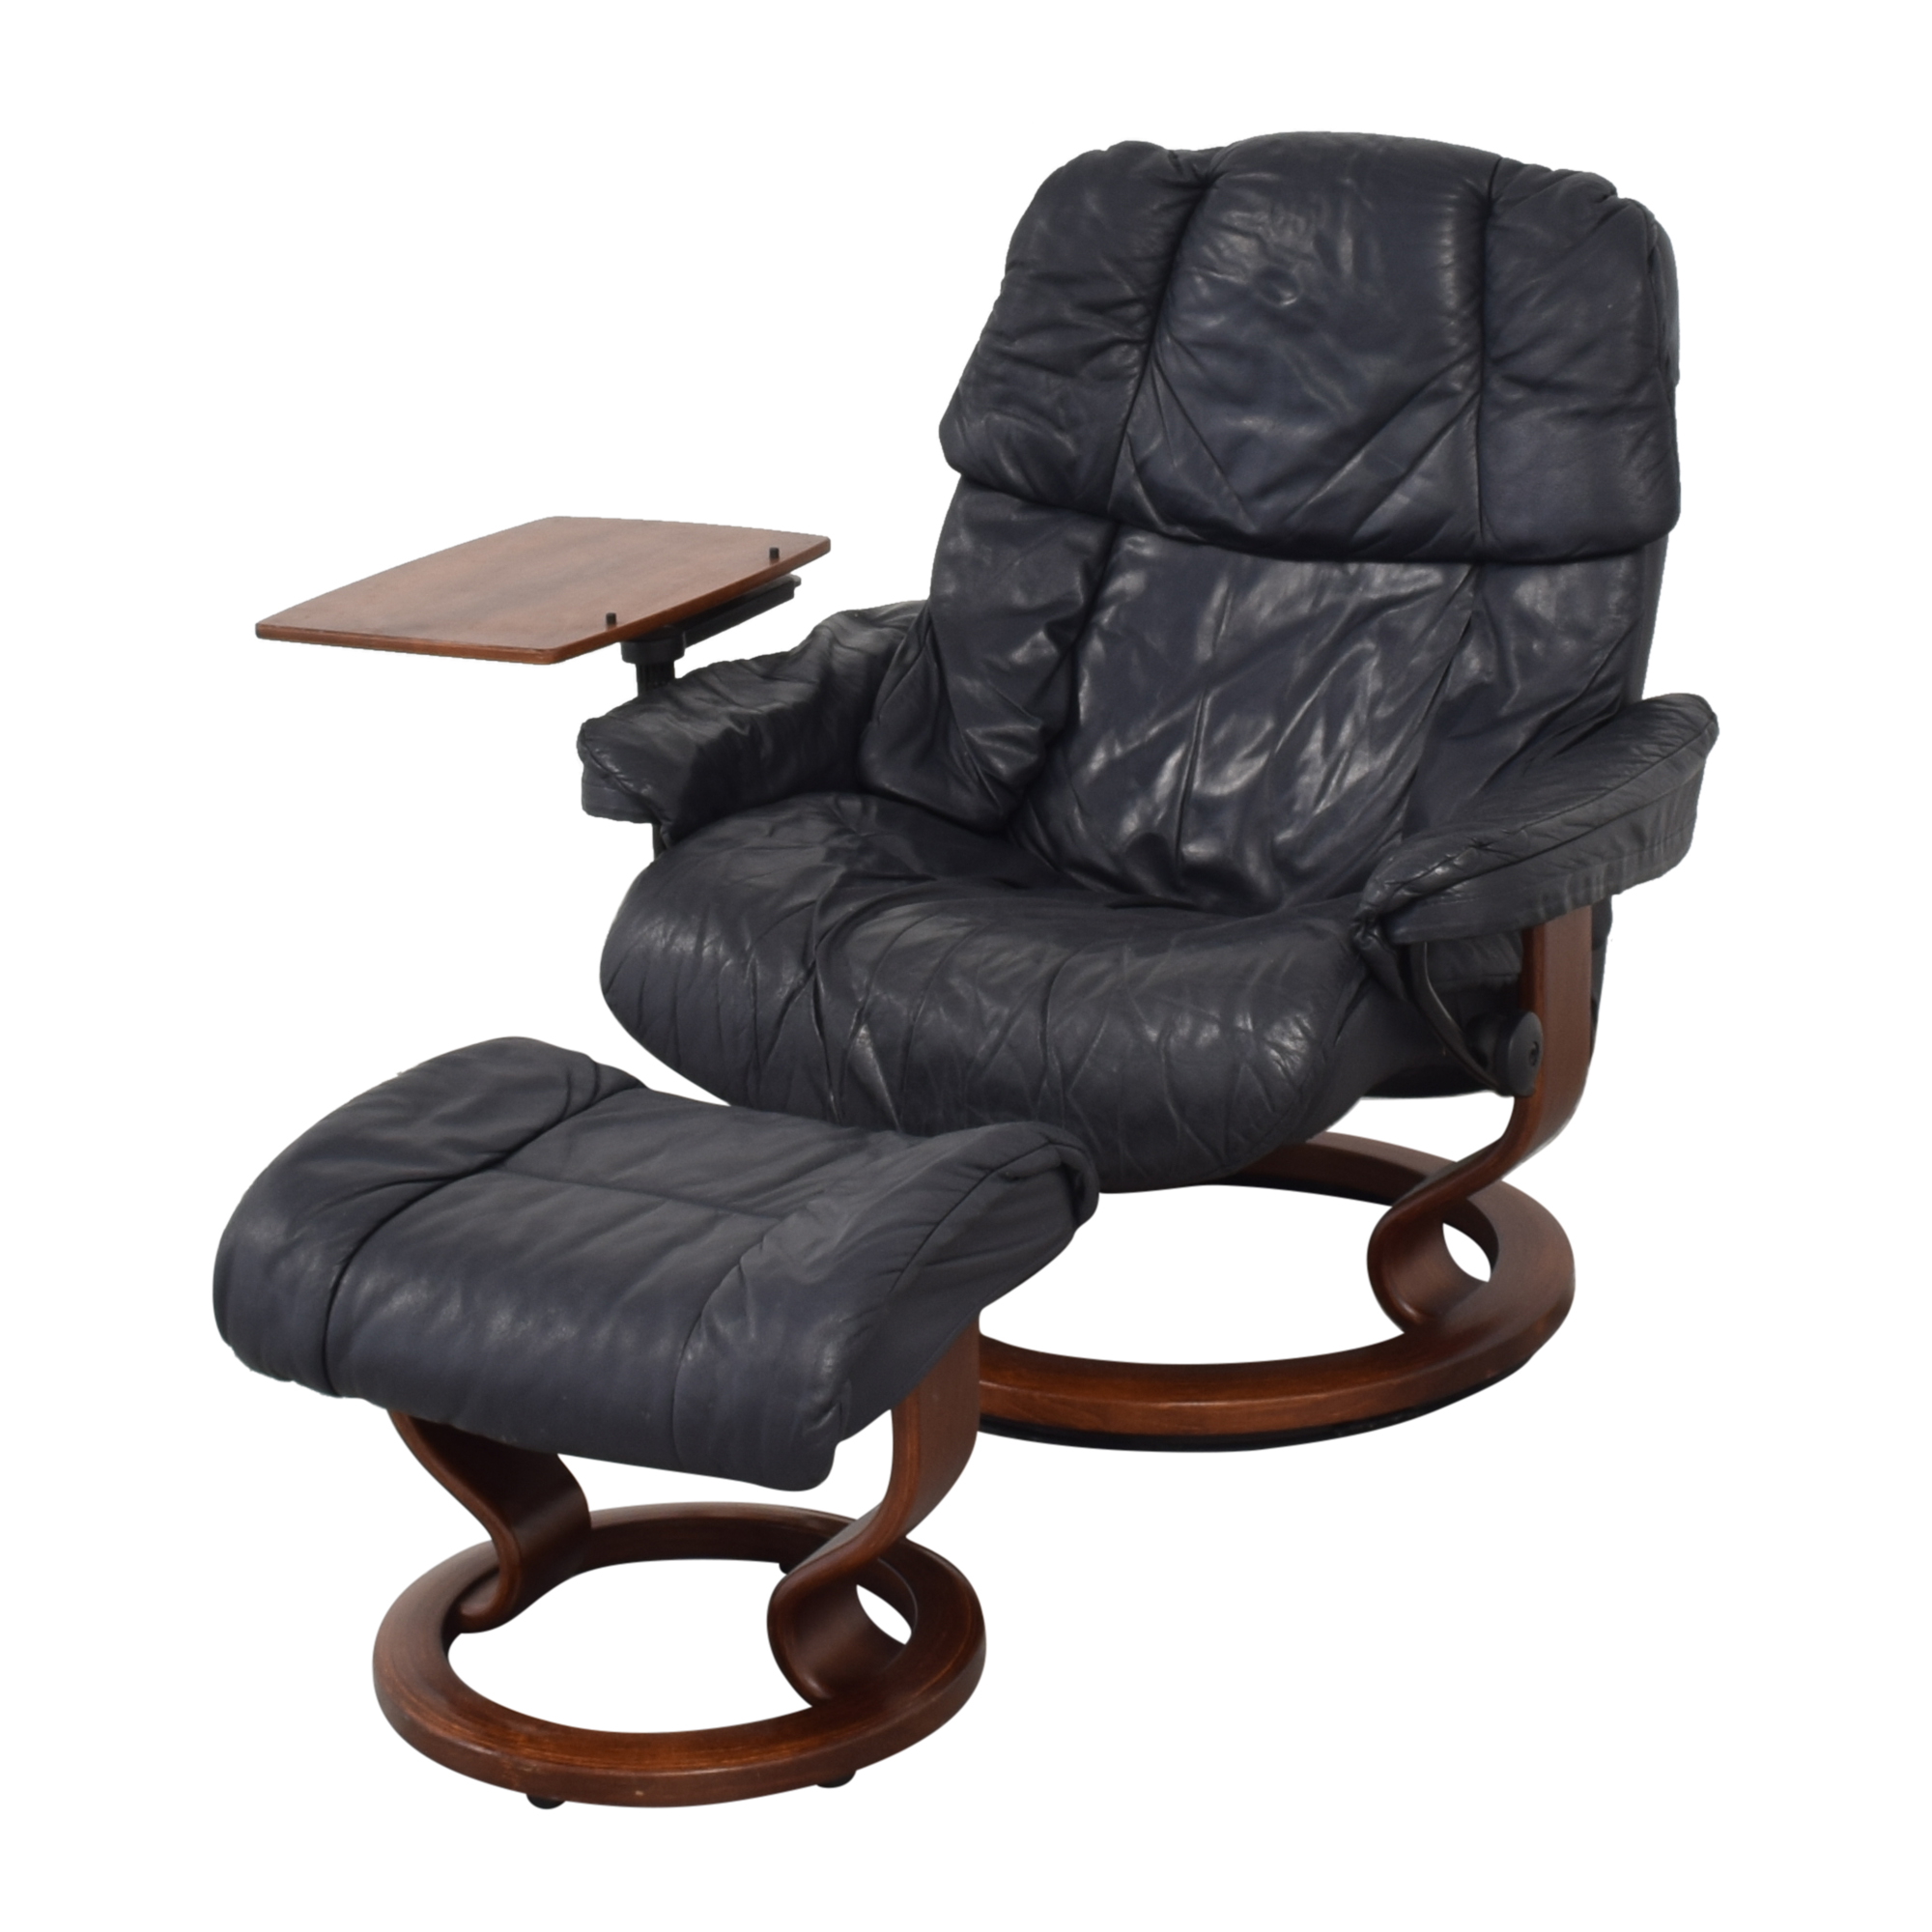 Ekornes Ekornes Stressless Reno with Footstool and Personal Table used